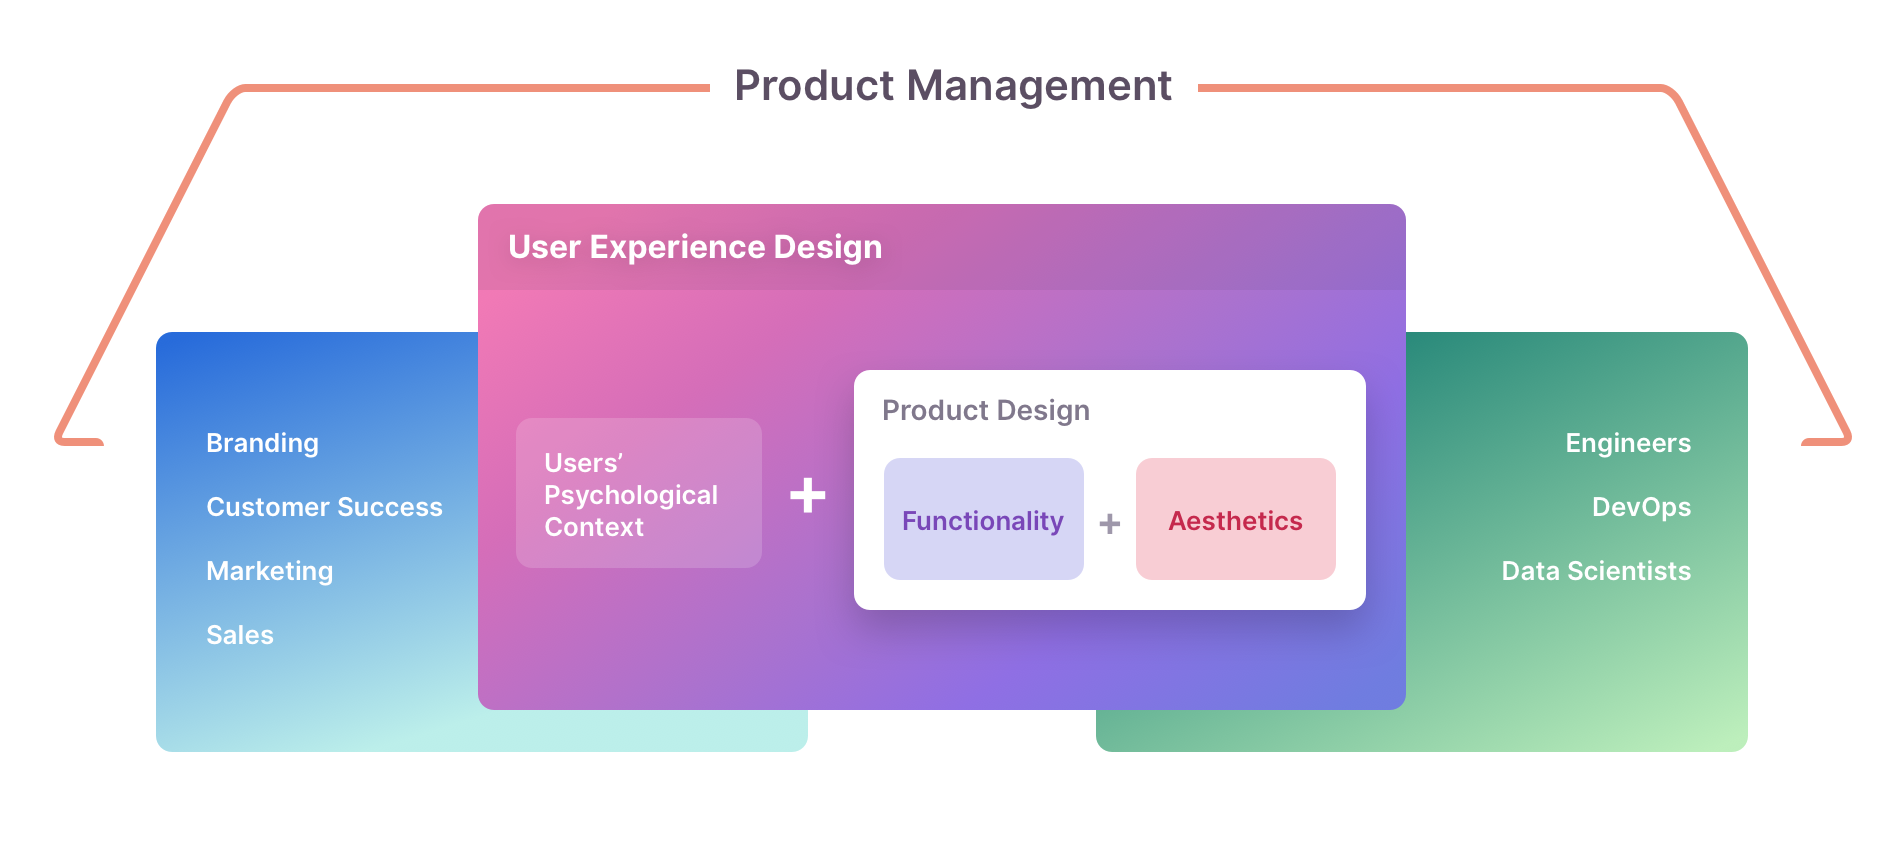 UX Design vs. Product Design